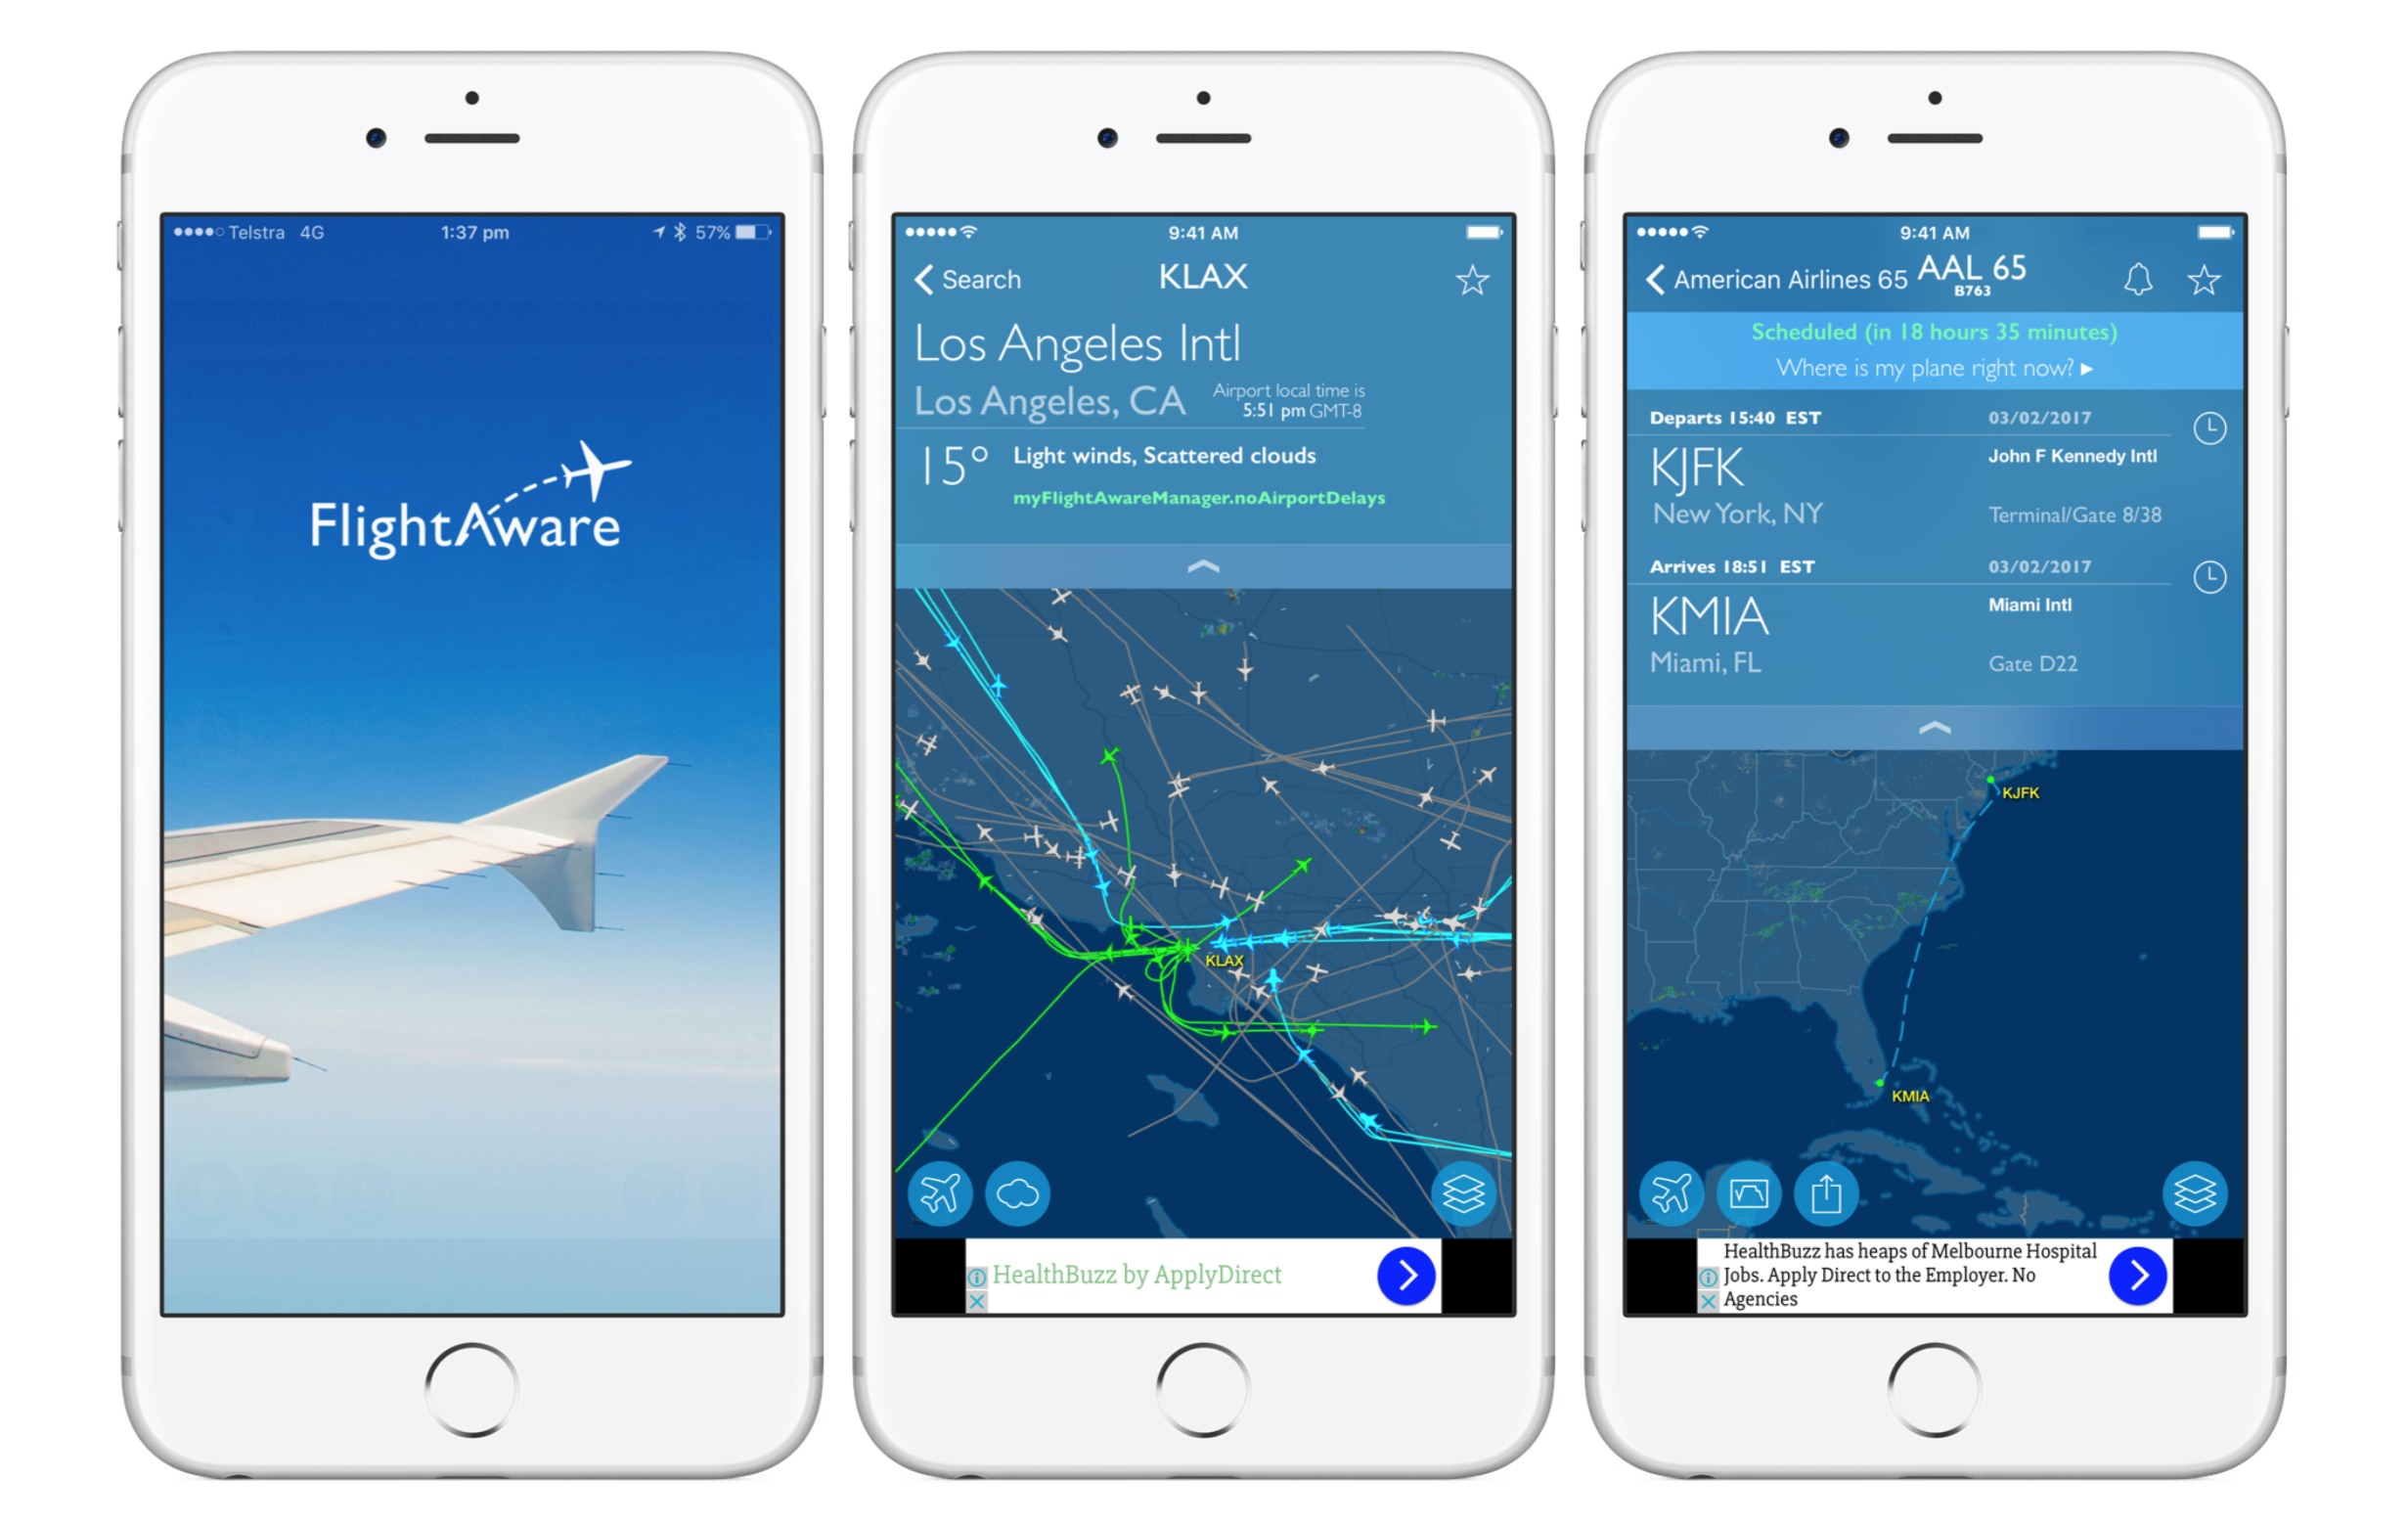 flight tracker apps for iphone - flightaware